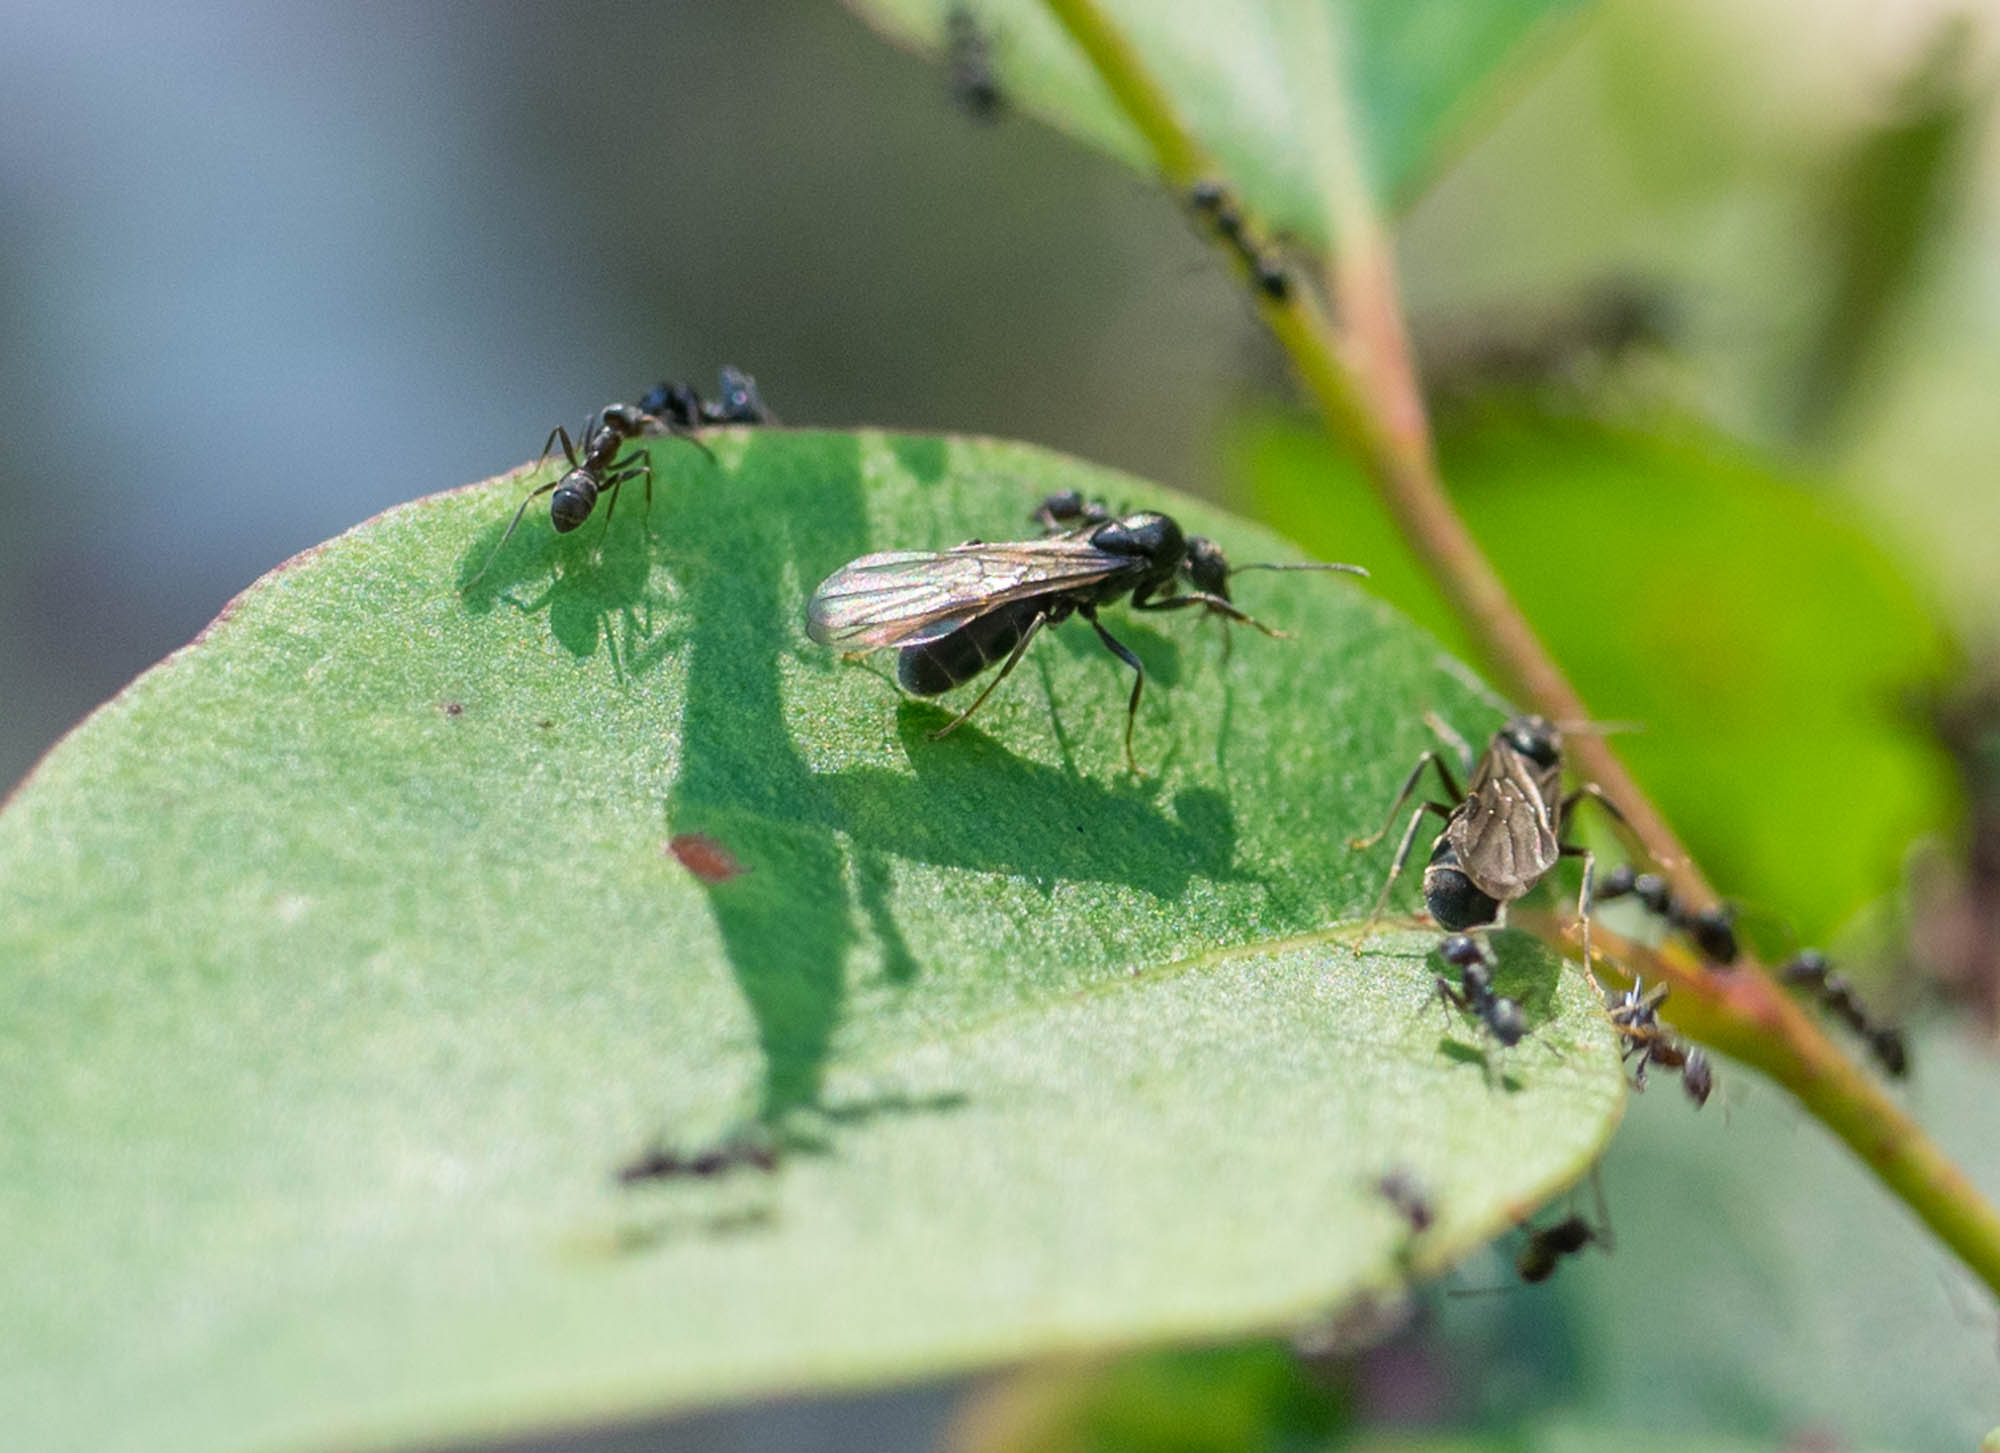 6th April, 2017. Alate  Iridomyrmex rufoniger  ants flying from leaves on a  Eucalyptus  sapling.